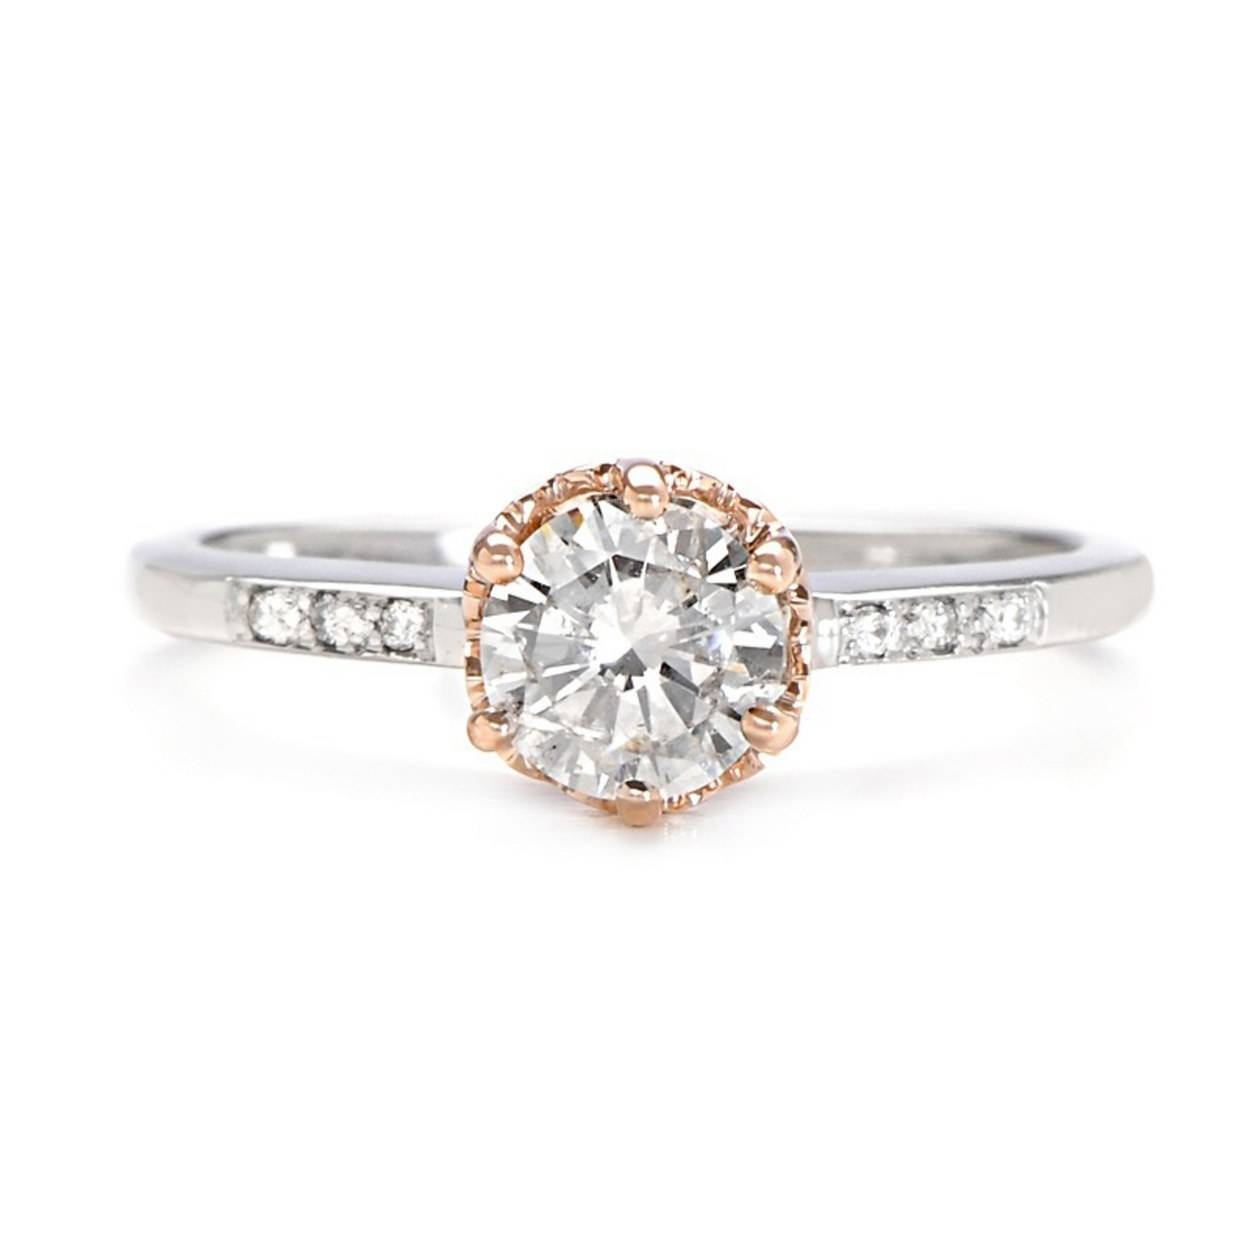 62 Diamond Engagement Rings Under $5,000 | Glamour Pertaining To Pink Diamond White Gold Engagement Rings (Gallery 15 of 15)